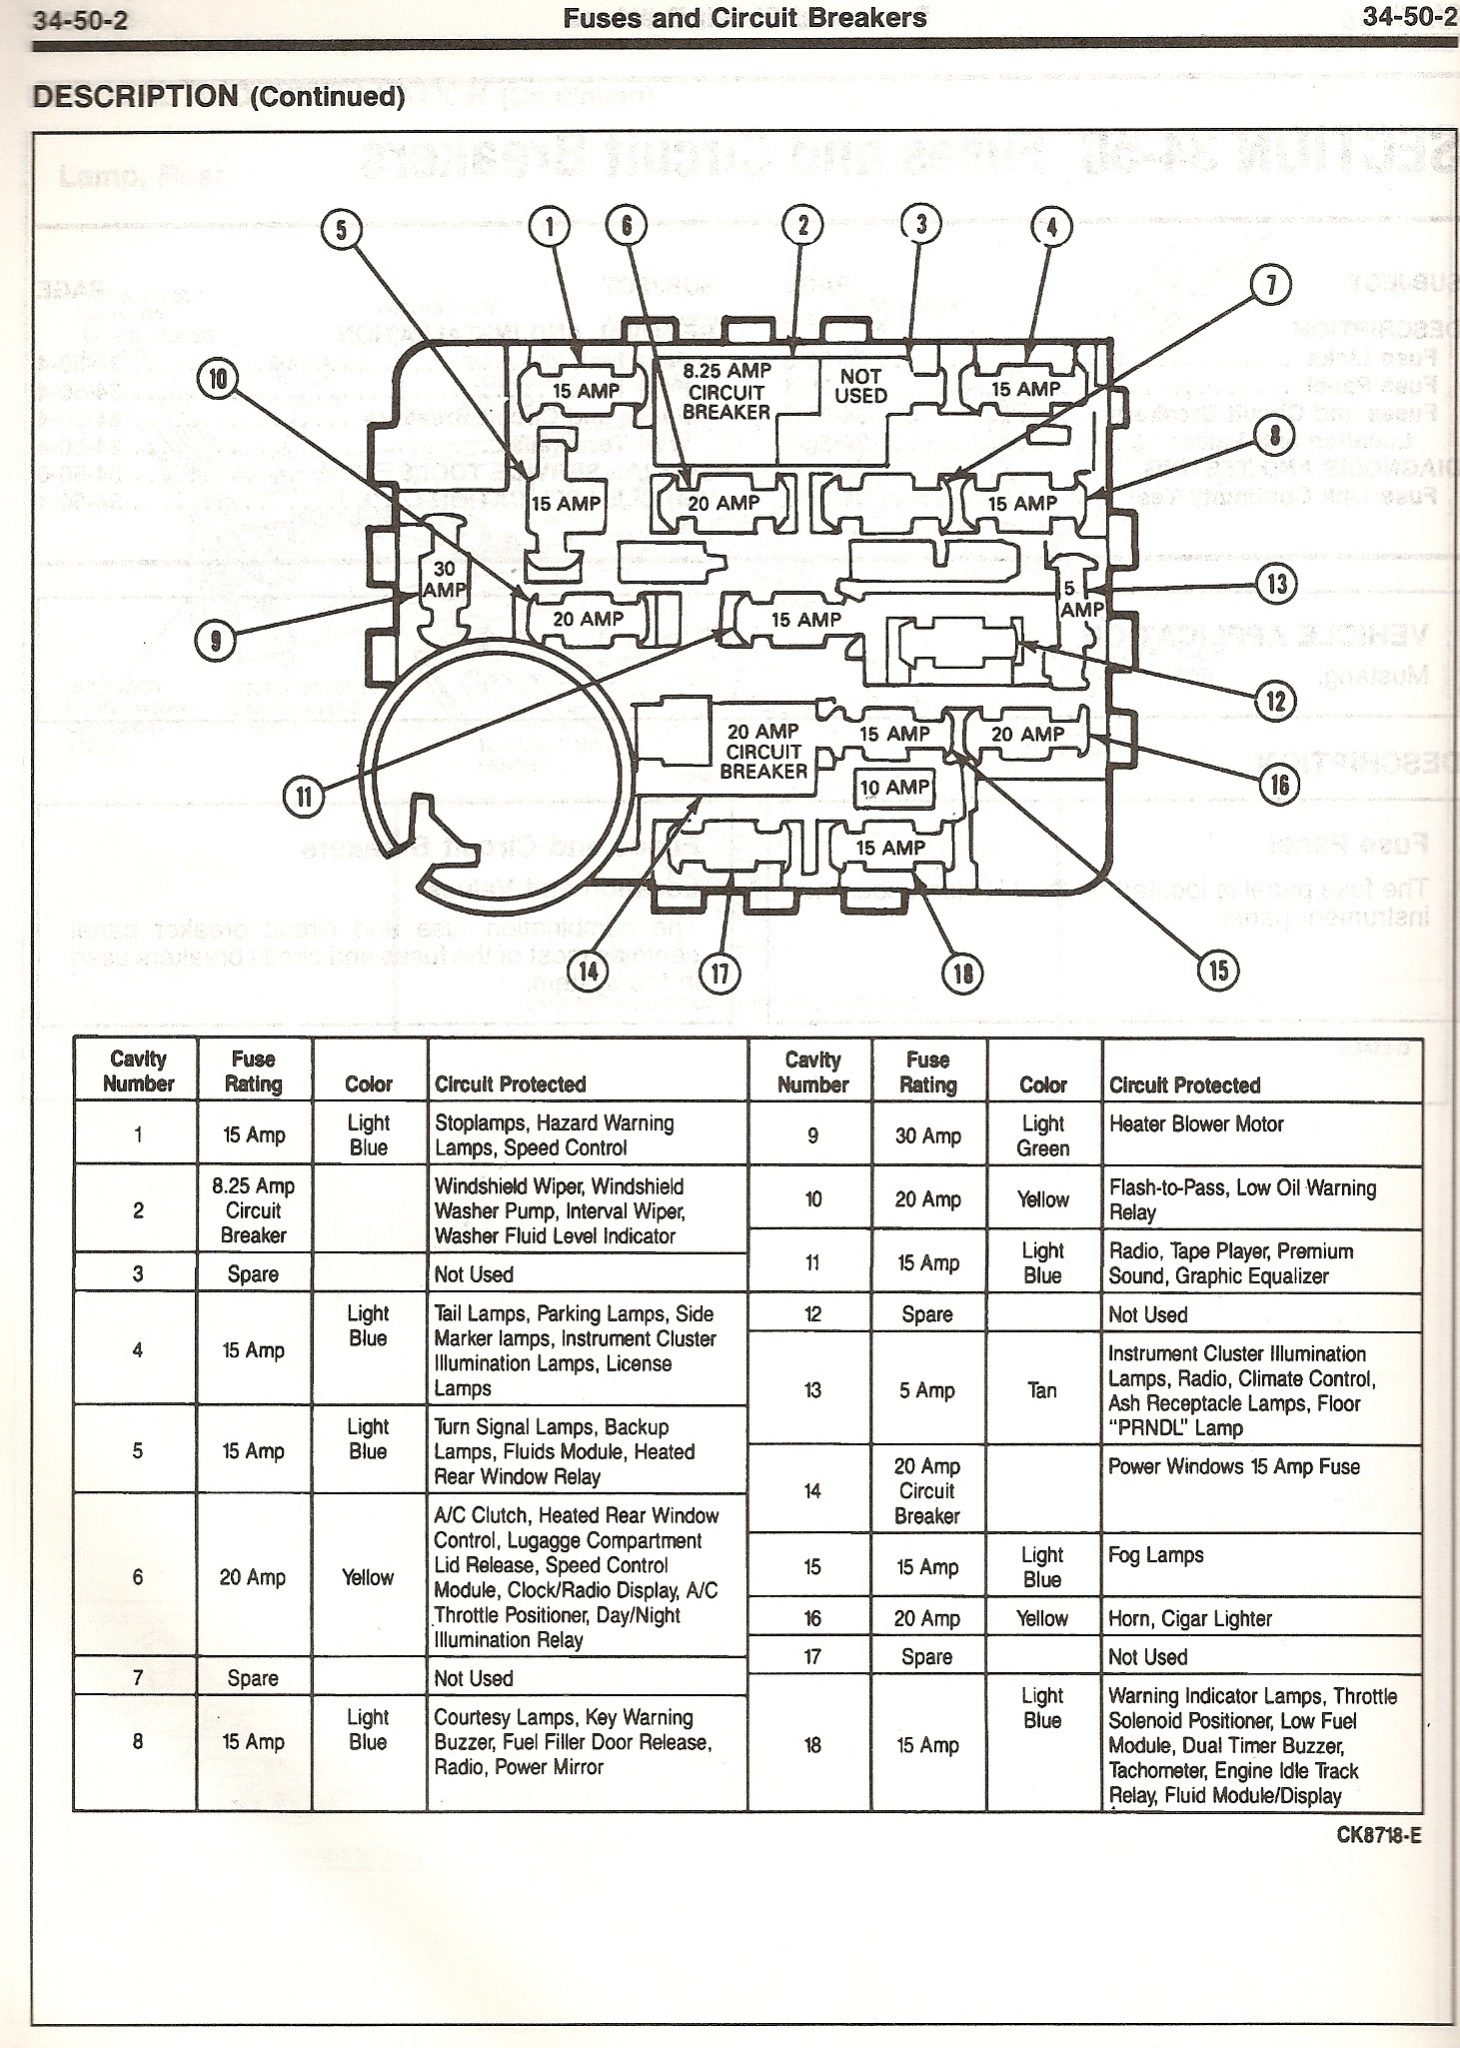 hight resolution of 93 crown victoria fuse box simple wiring schema 2007 crown victoria fuse box diagram 1990 crown victoria fuse box diagram